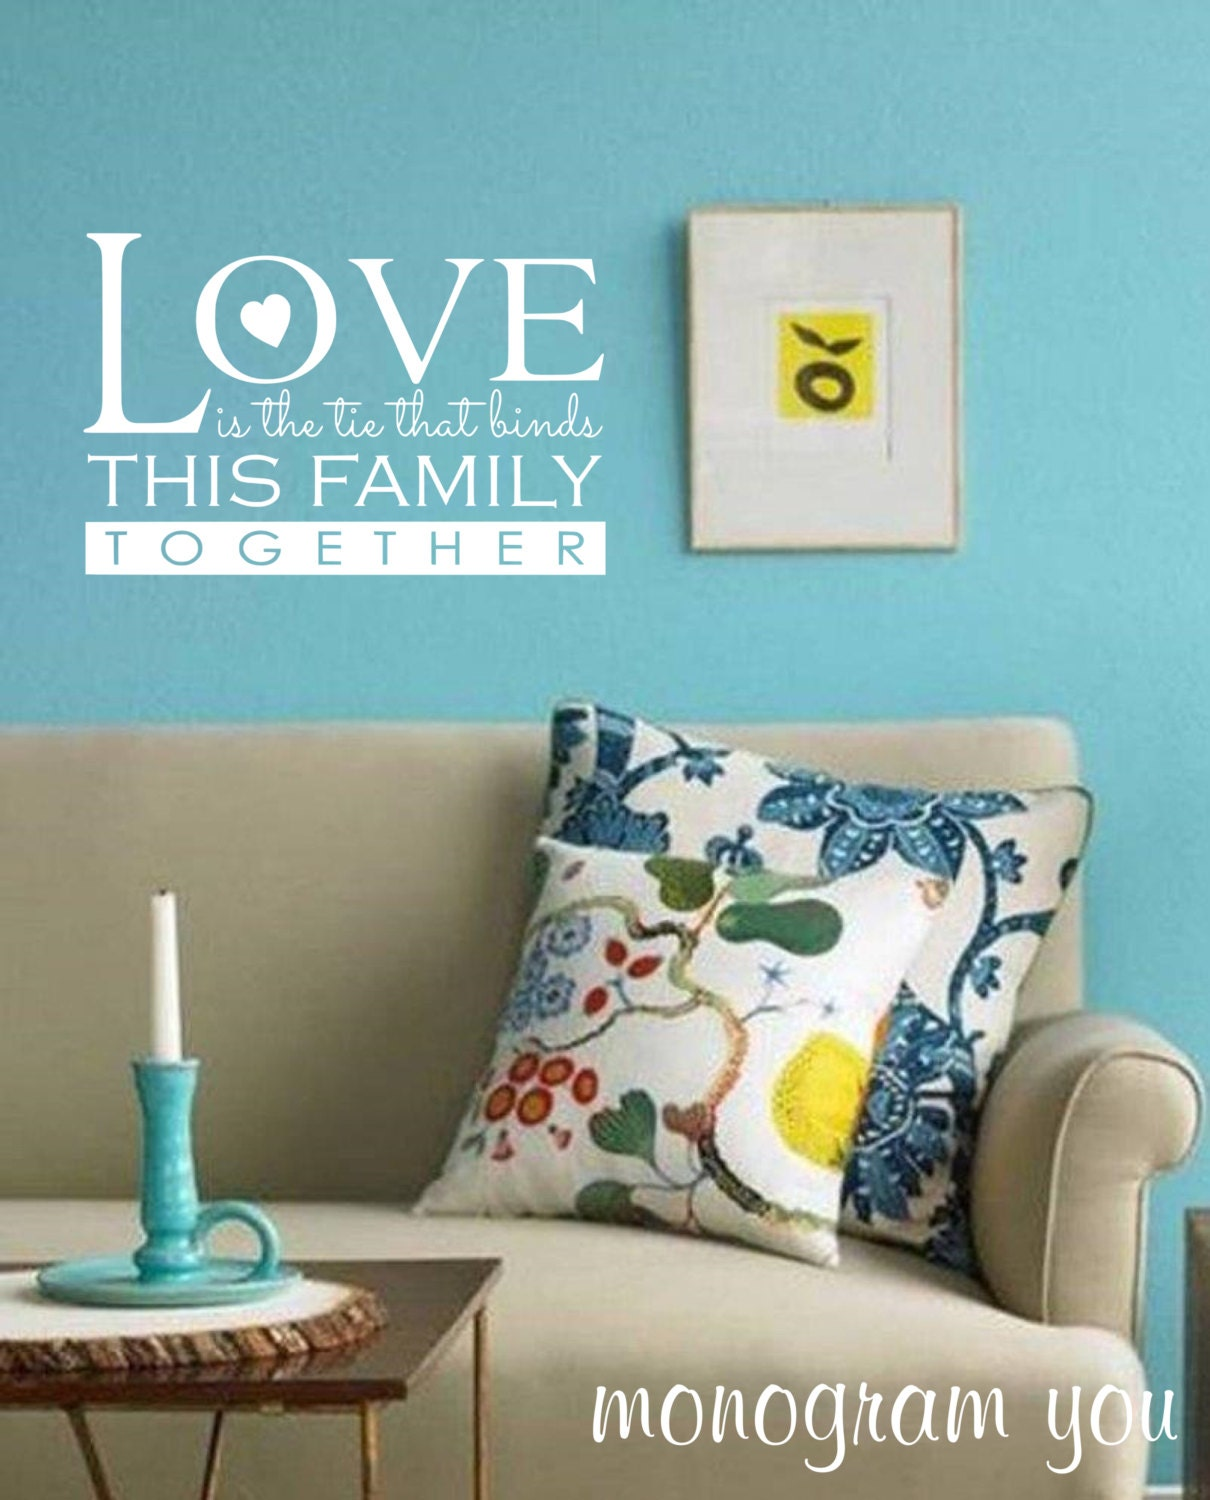 Family Wall Decal 'Love Is The Tie That Binds This Family